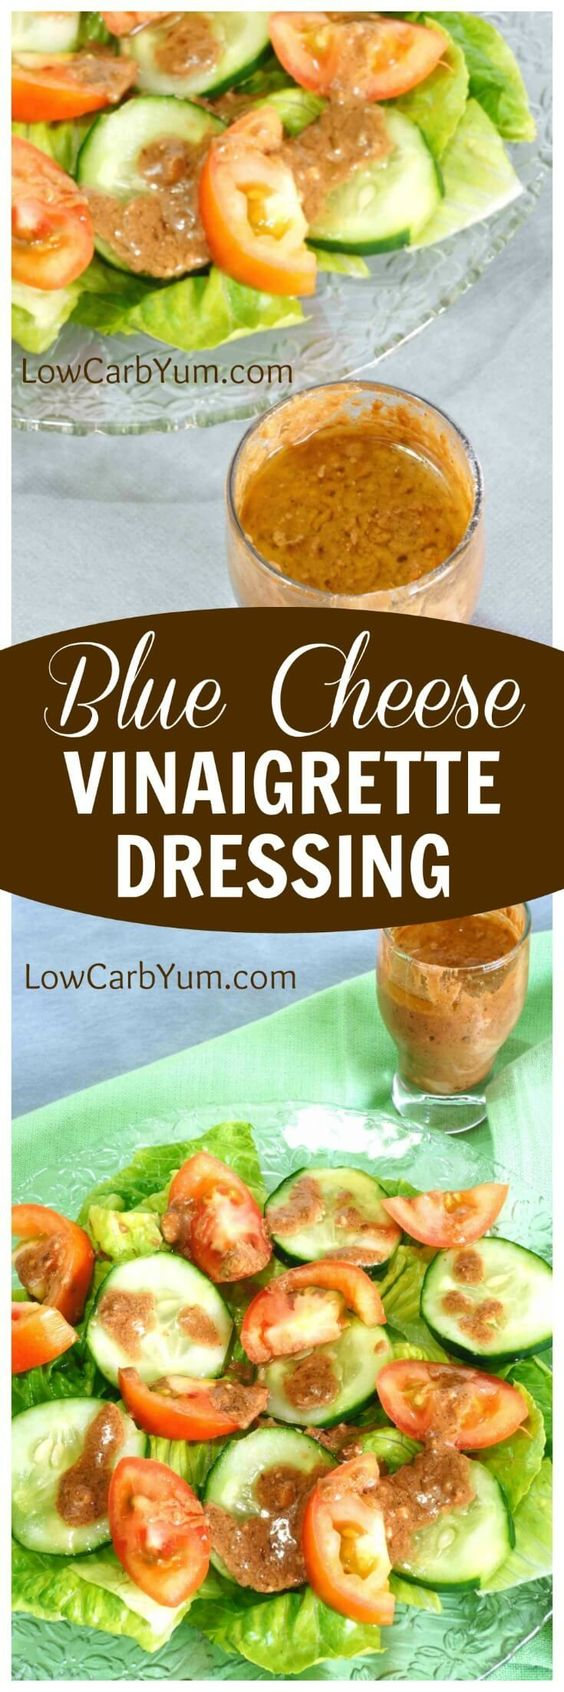 This low carb blue cheese vinaigrette dressing is sure to please. Adds an extra special touch to a plain low carb salad. Made with balsamic vinegar.